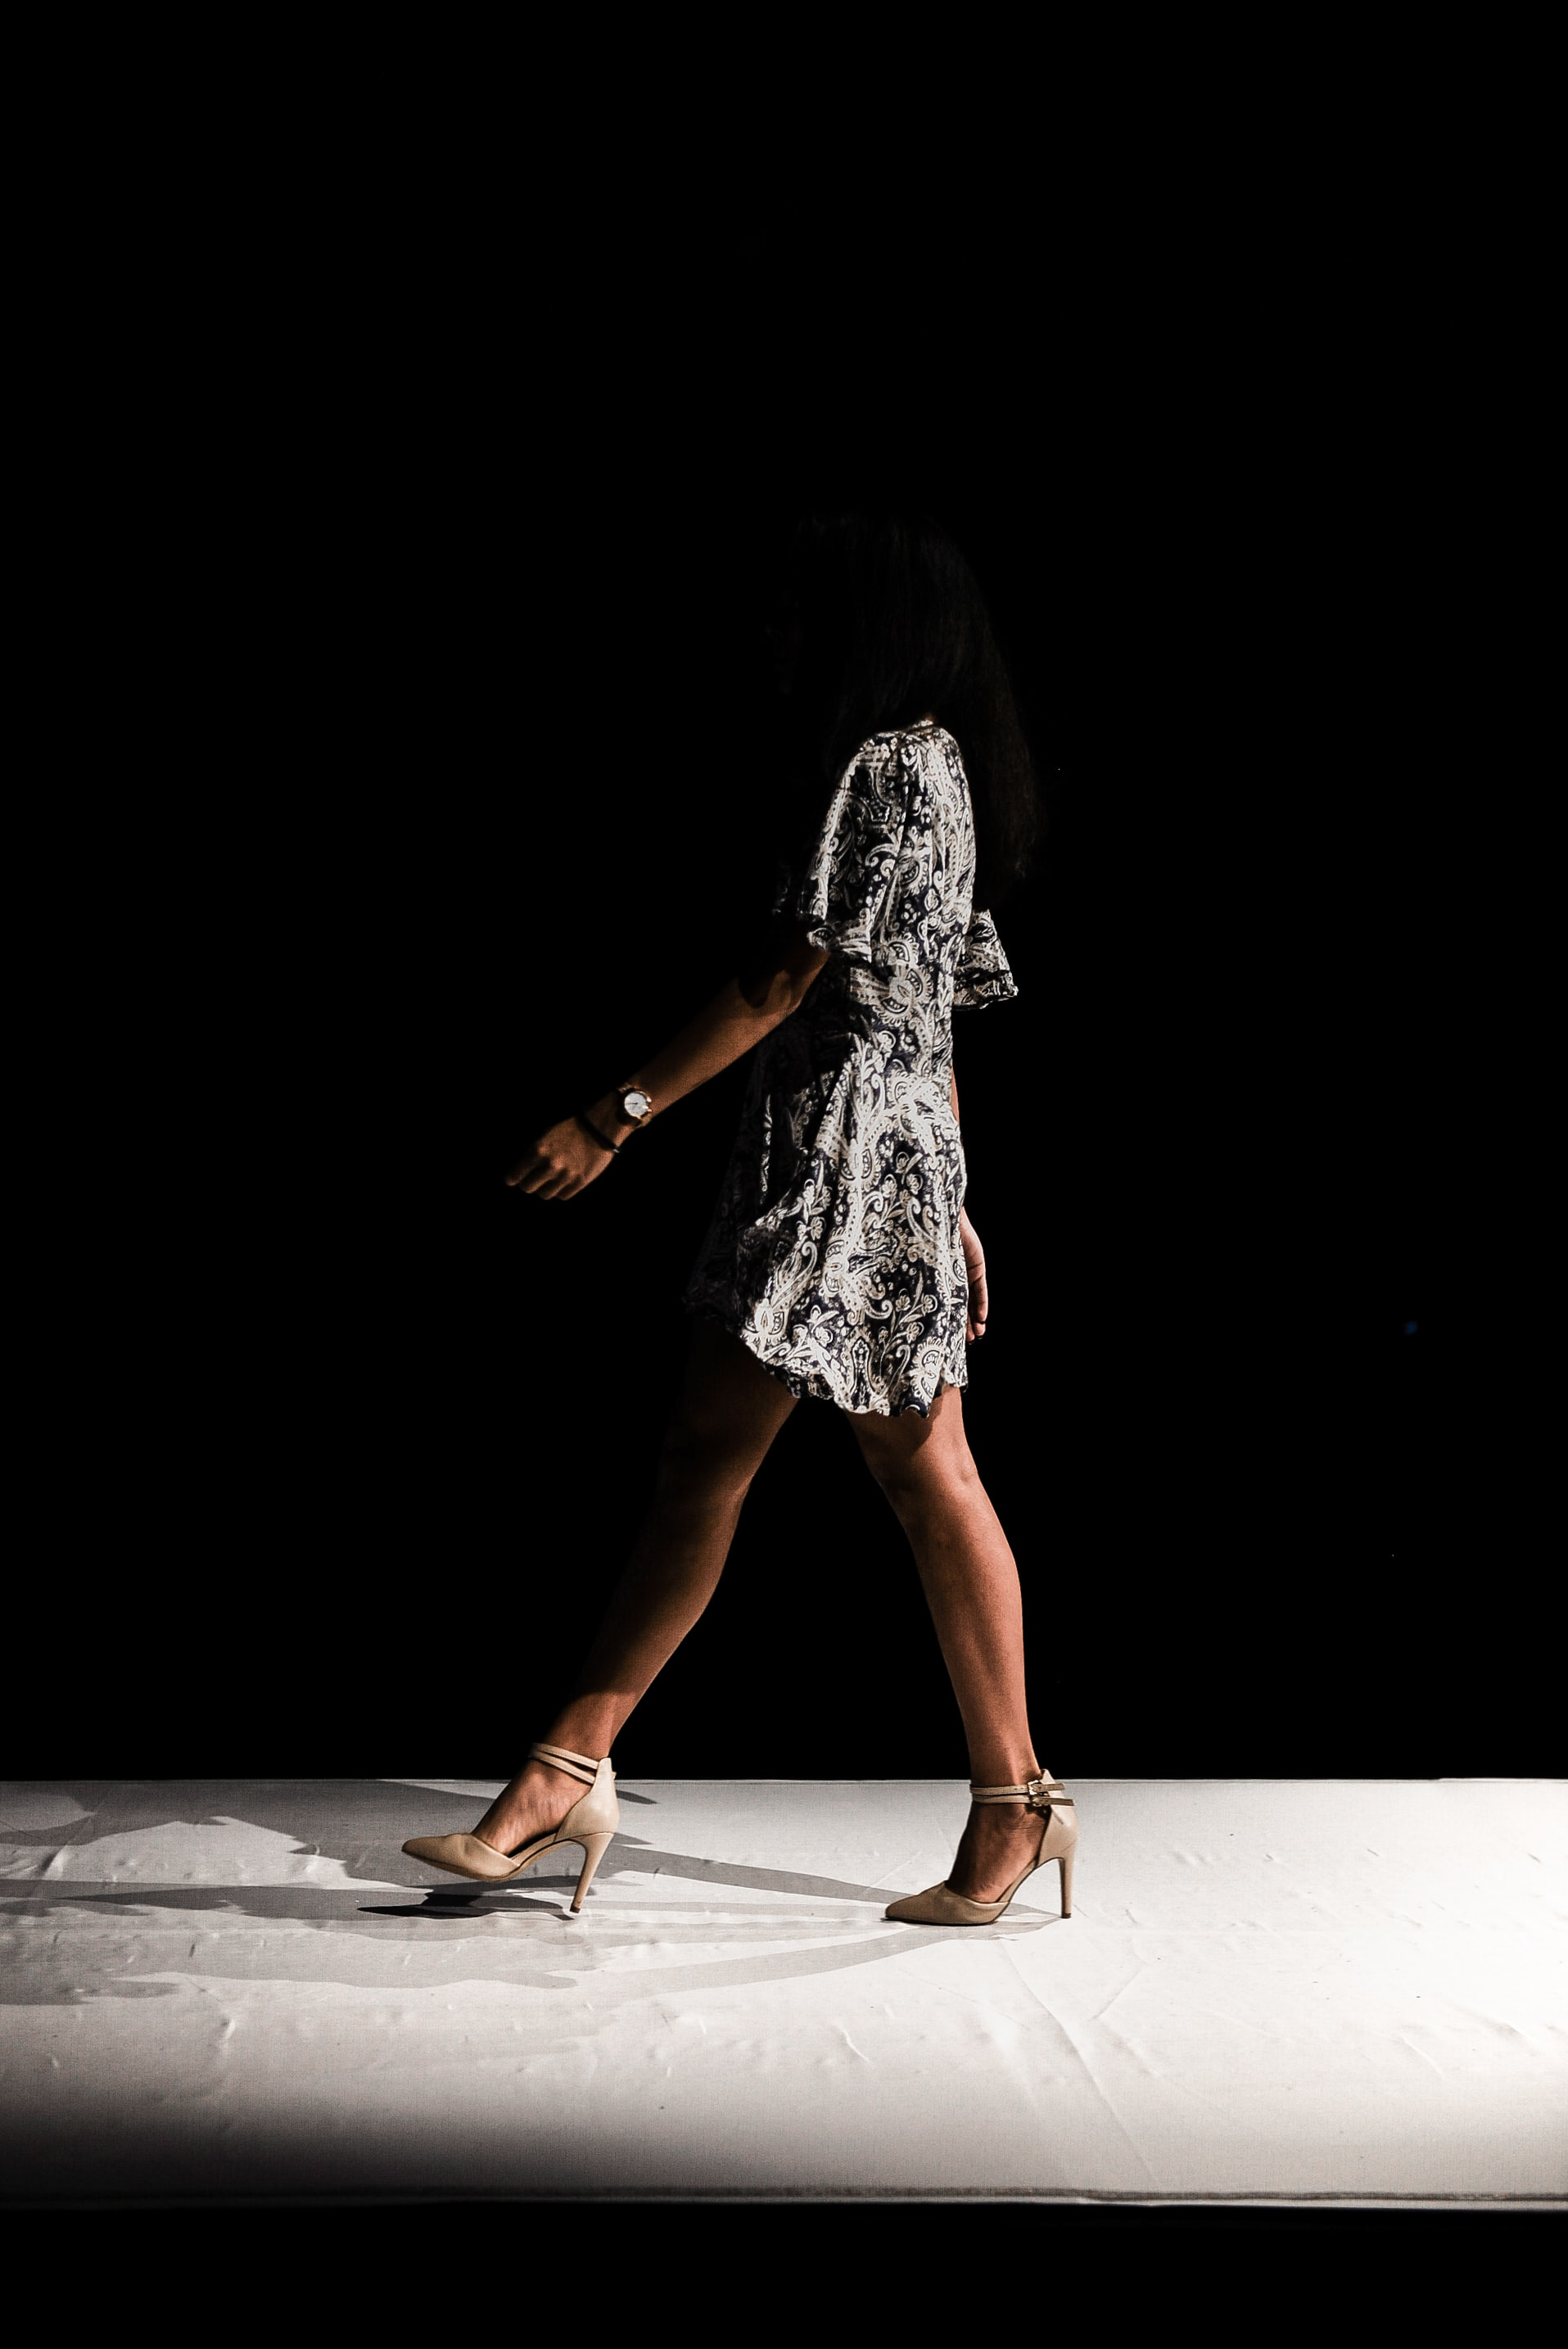 woman wearing black and white floral dress walks inside dark room